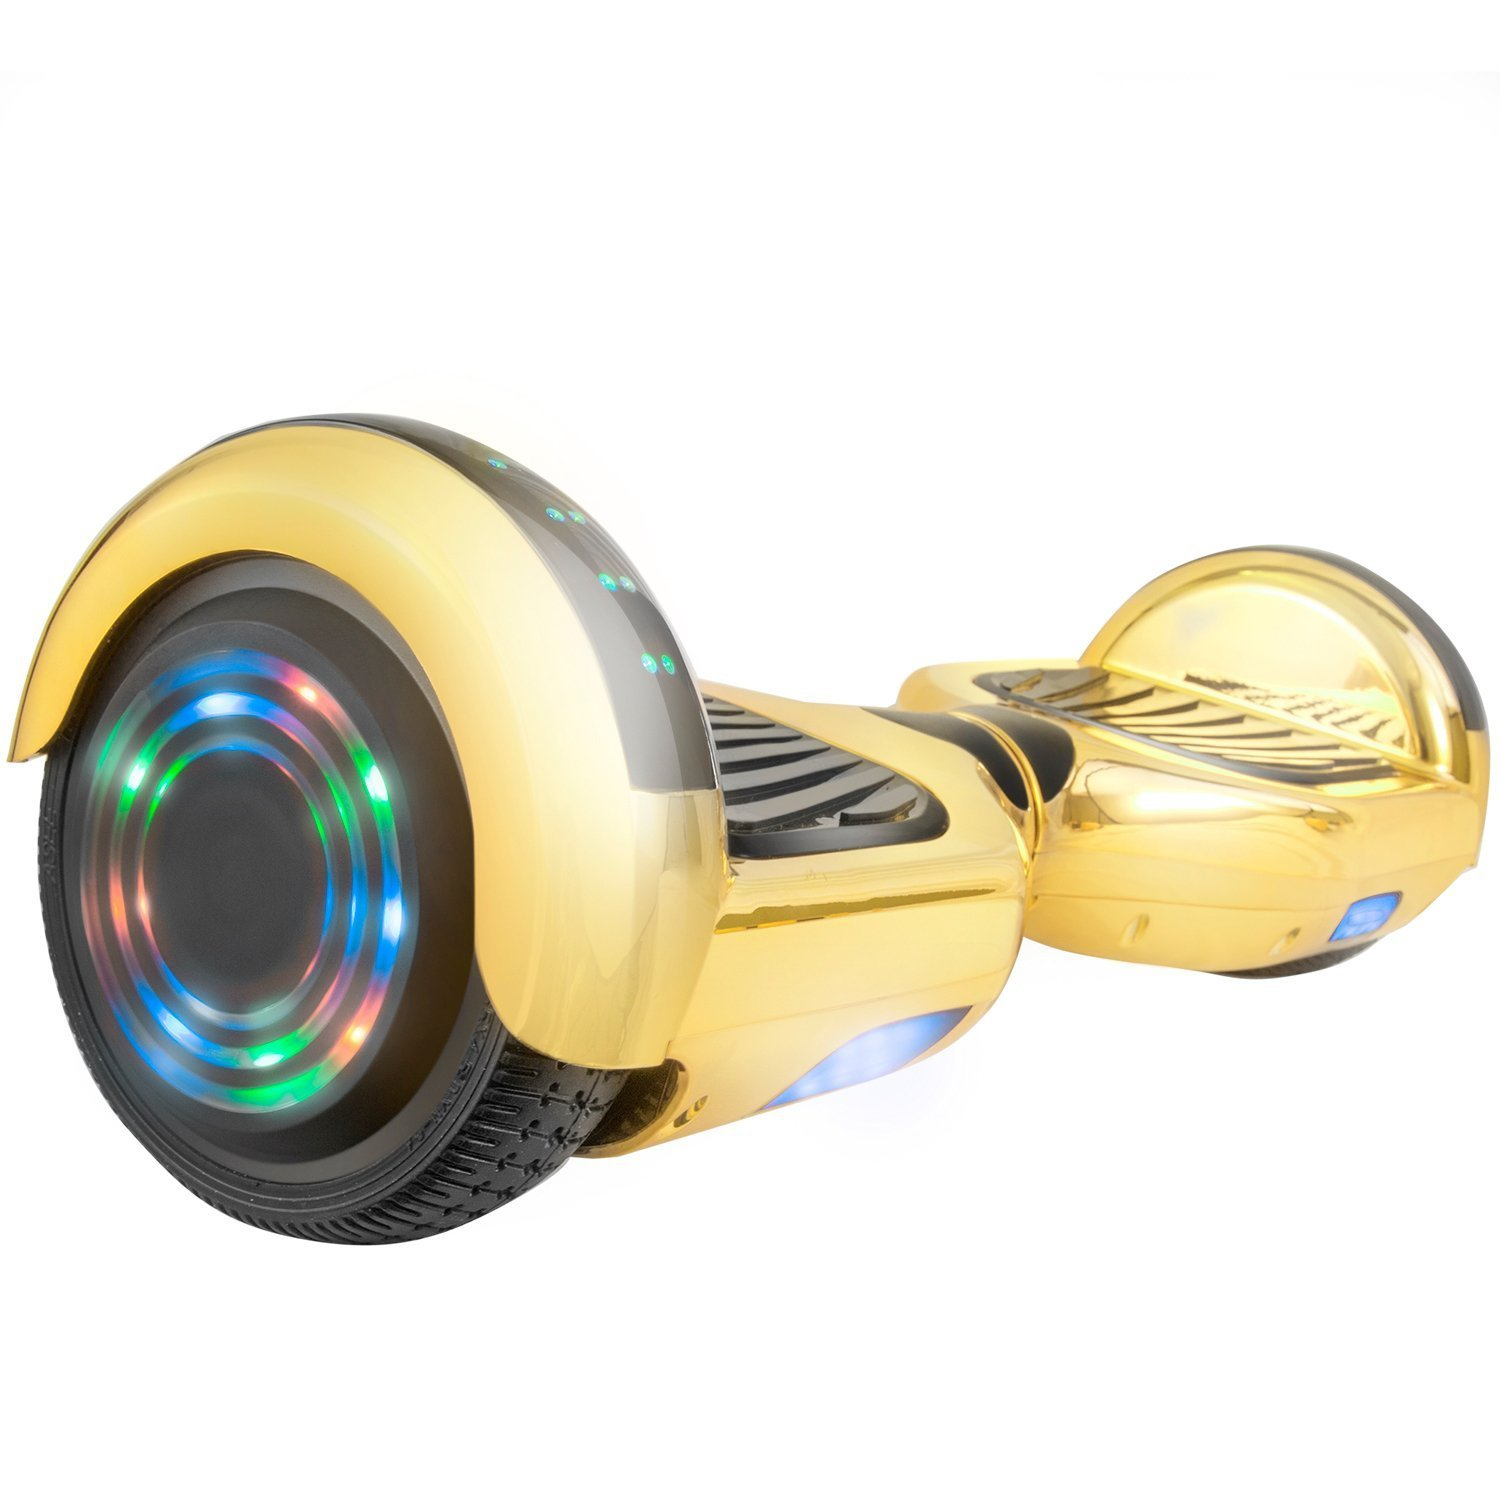 "Hoverboard UL2272 Certified 6.5"" Flash Wheel Bluetooth Speaker with LED Light Self Balancing Wheel Electric Scooter - Chrome Gold"